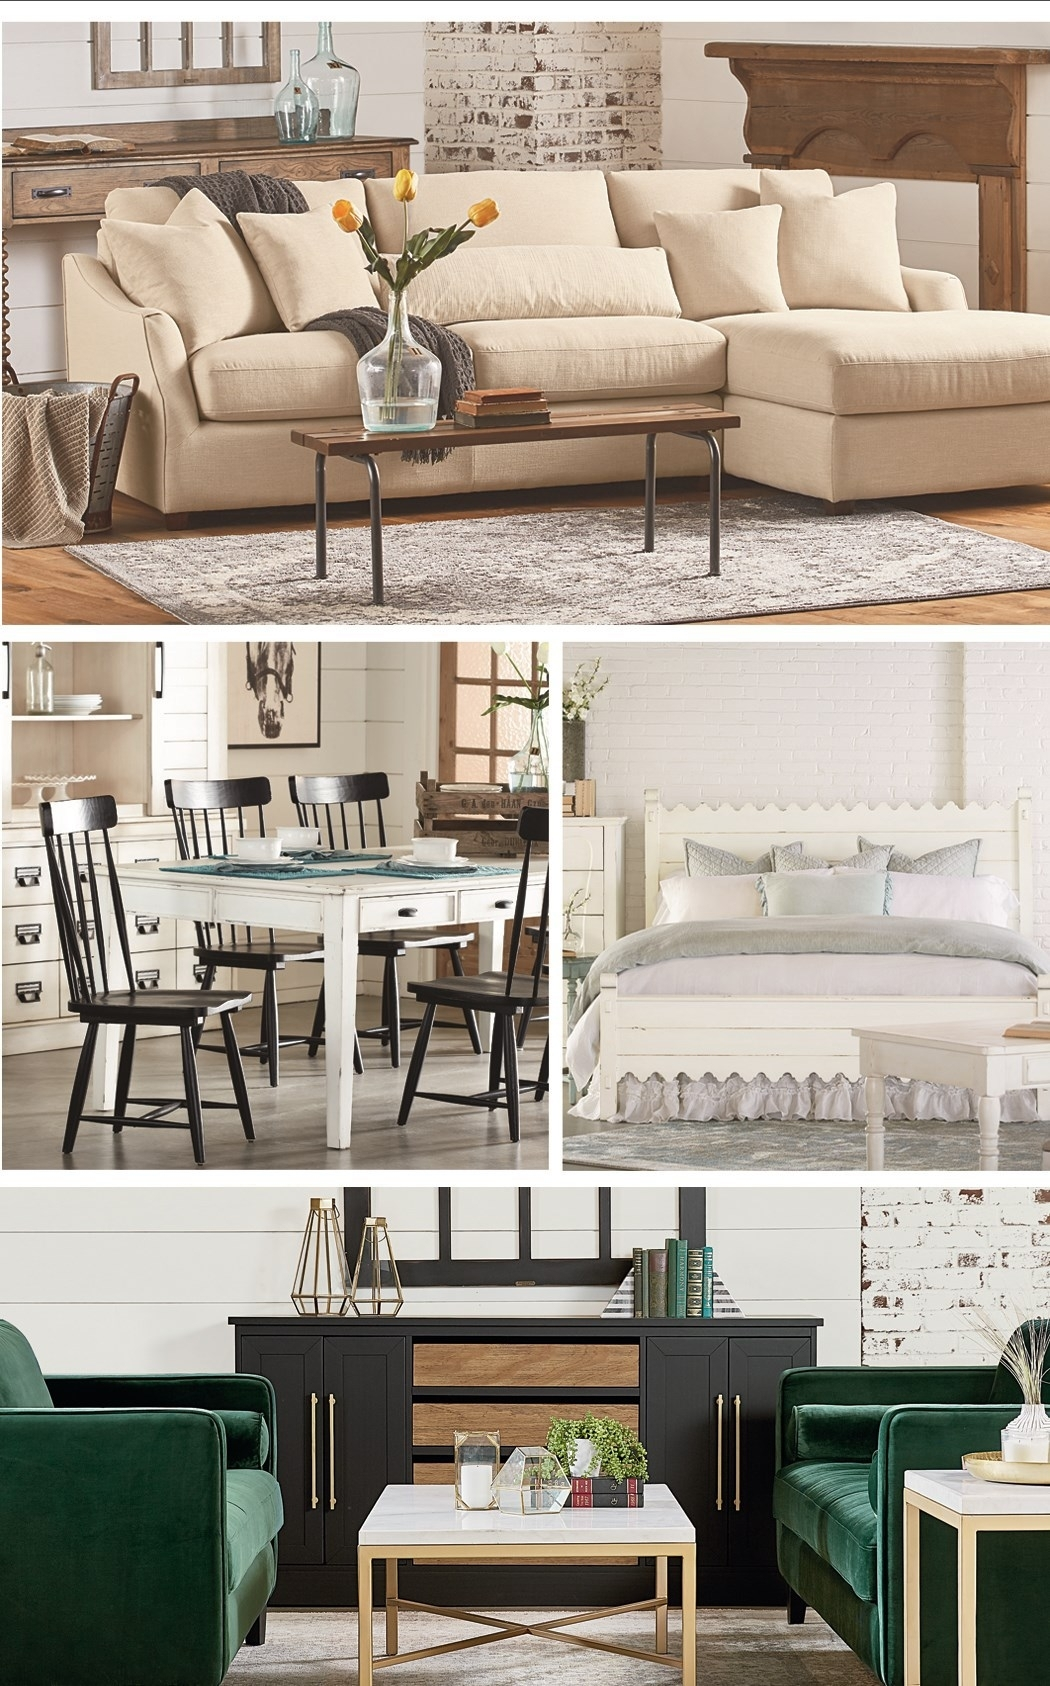 Magnolia Homejoanna Gaines | Jacksonville, Gainesville, Palm Intended For Magnolia Home Homestead 3 Piece Sectionals By Joanna Gaines (Image 22 of 25)